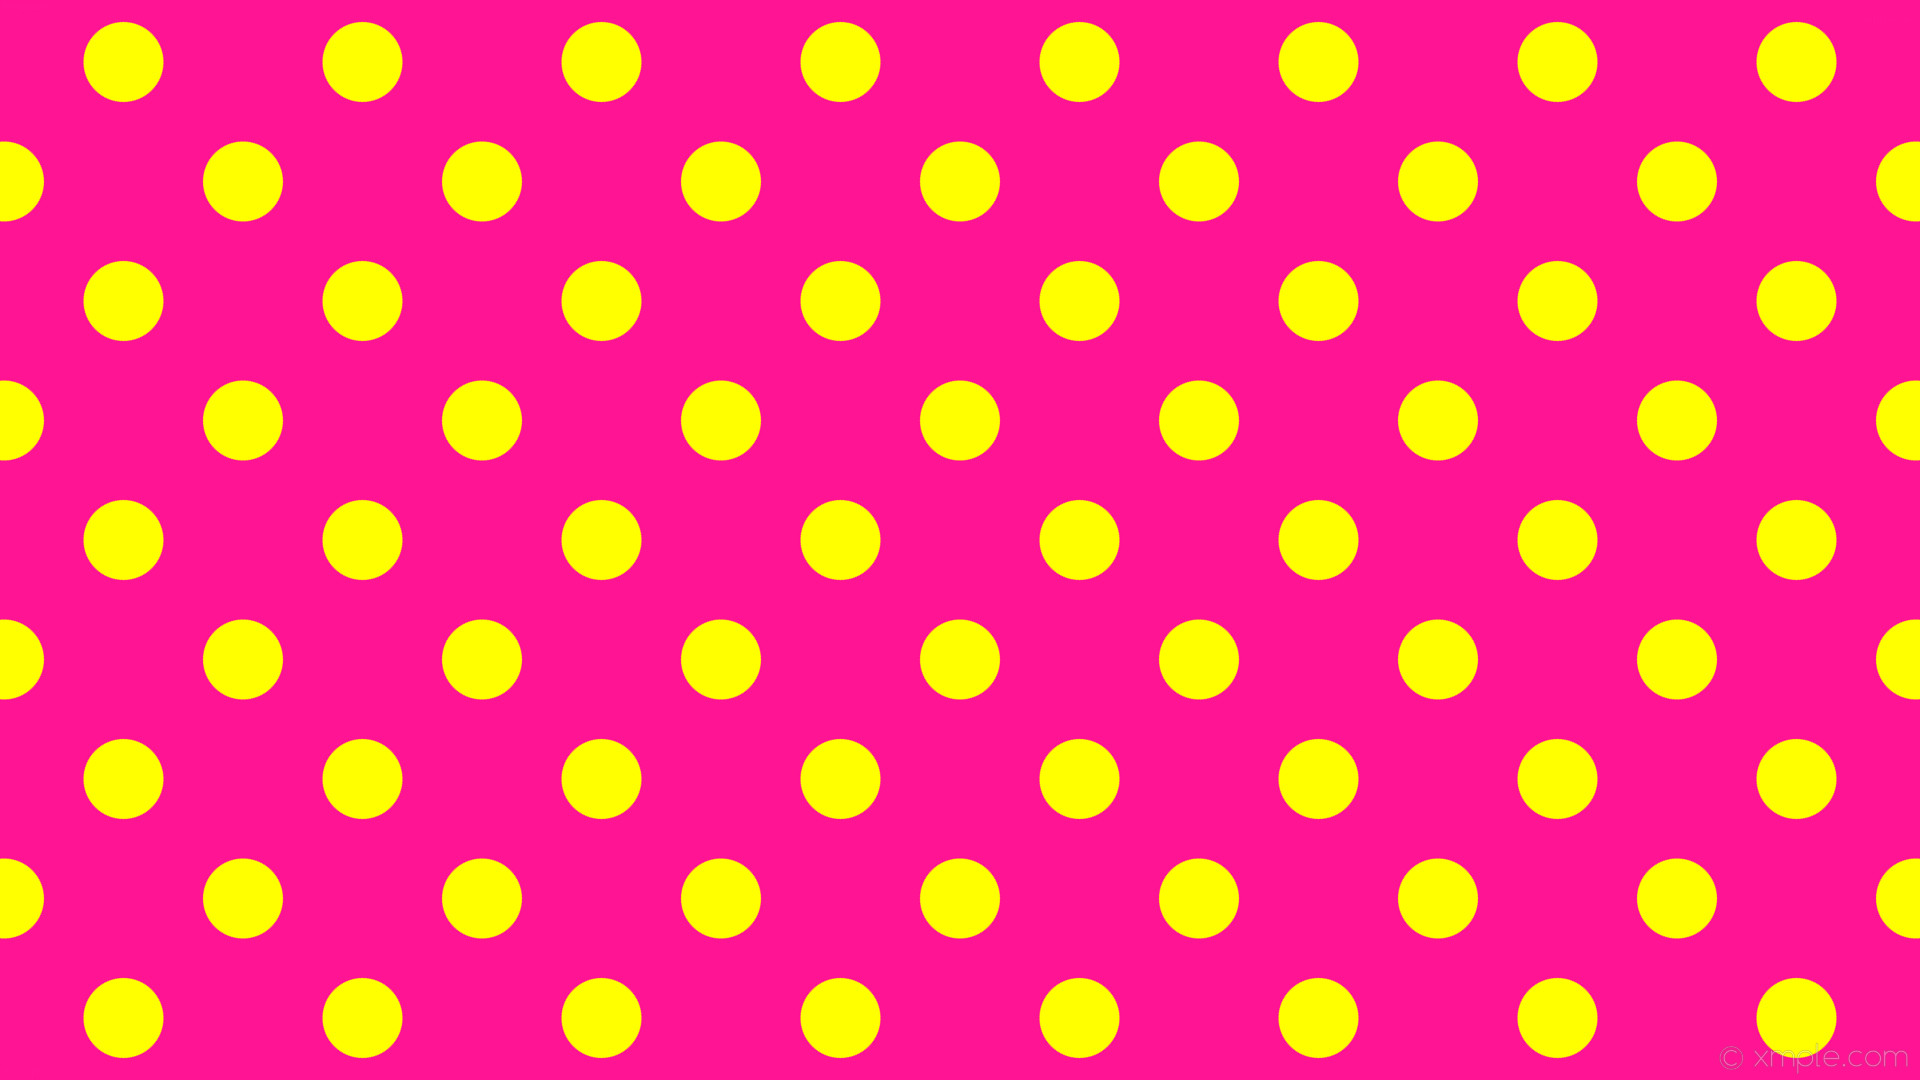 Pink And Yellow Wallpaper 53 Images